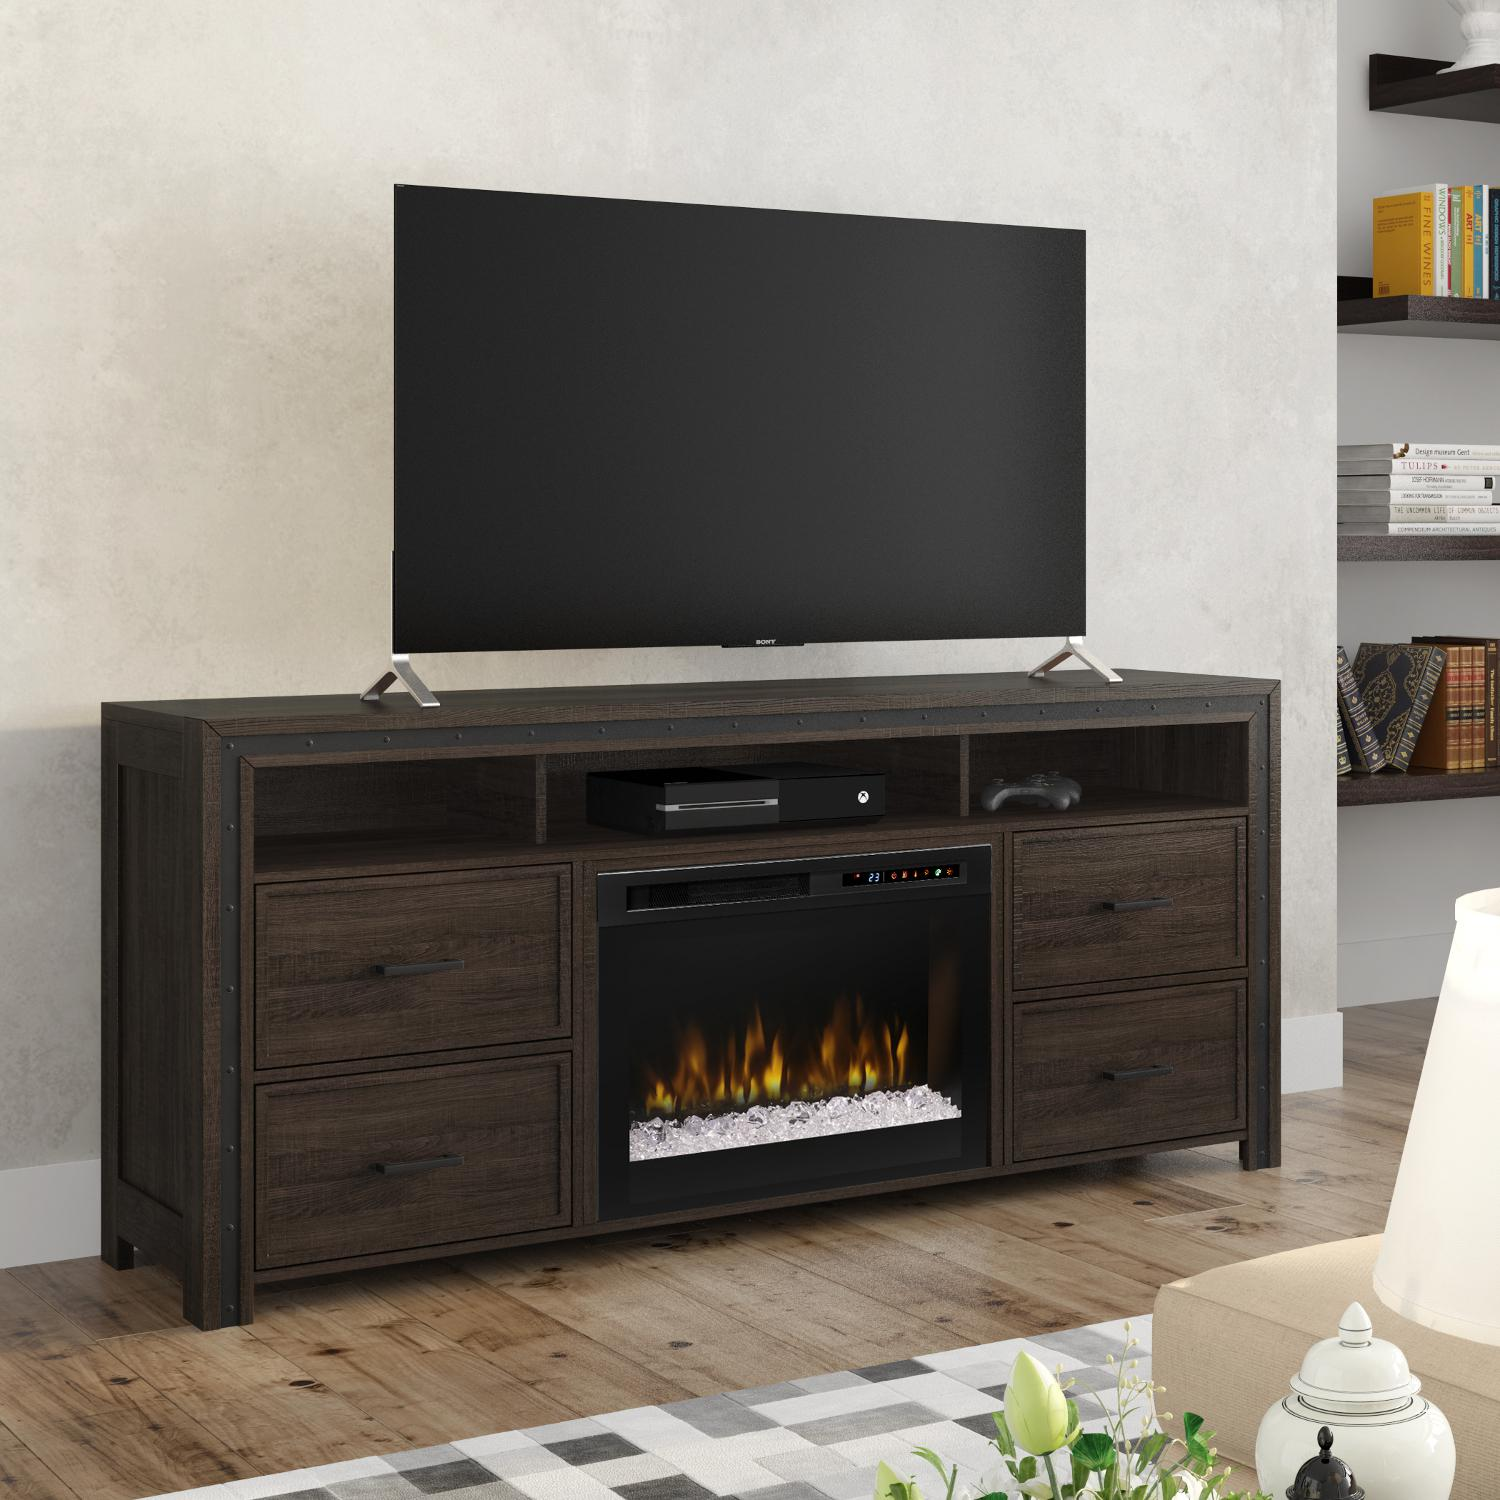 Dimplex Multi-Fire XHD Thom 66-Inch Electric Fireplace Me...